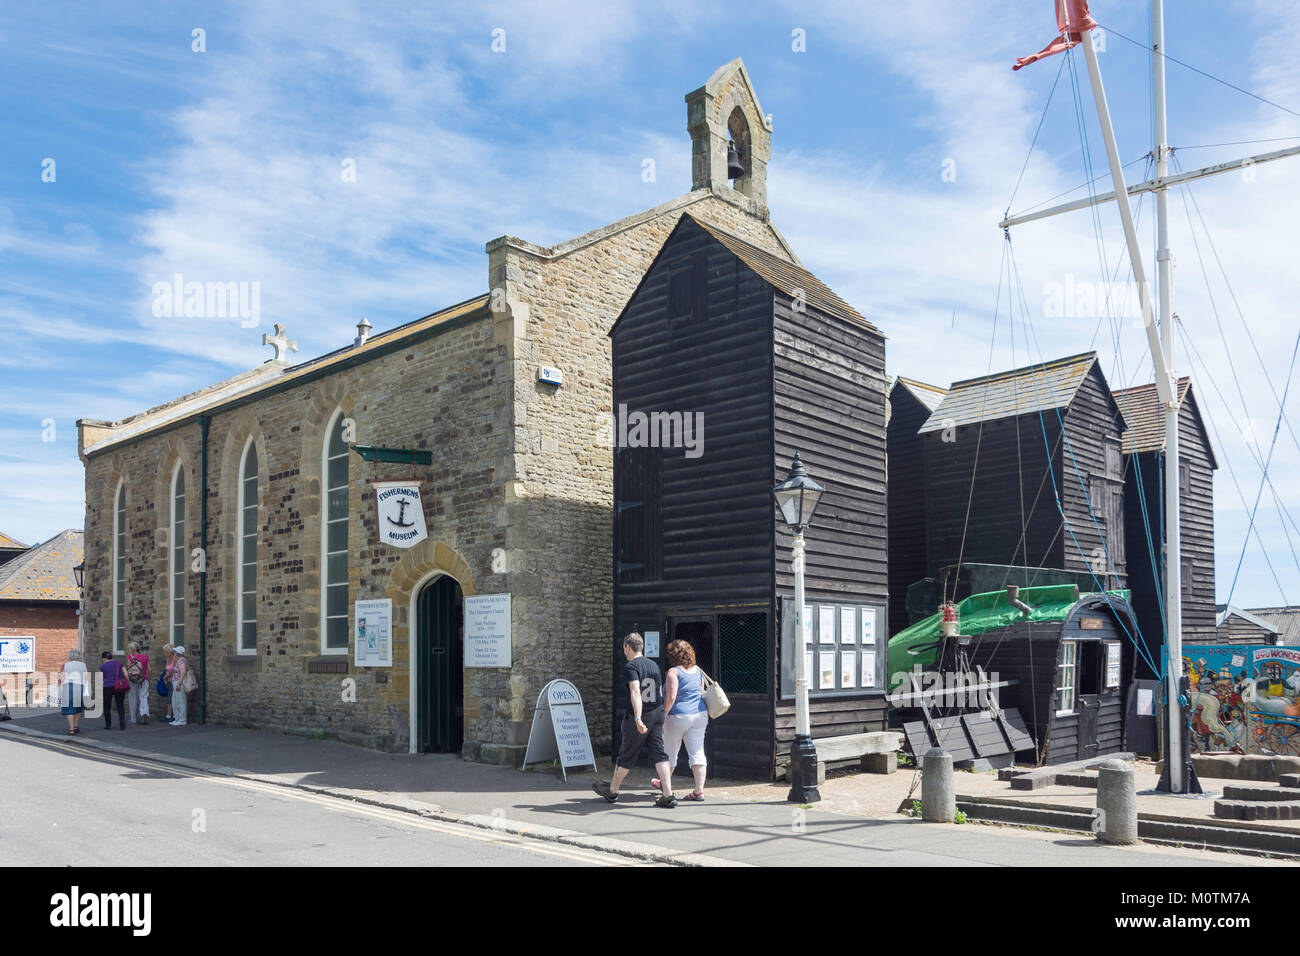 Fisherman's Museum, Rock-A-Nore Road, Hastings, East Sussex, England, United Kingdom - Stock Image